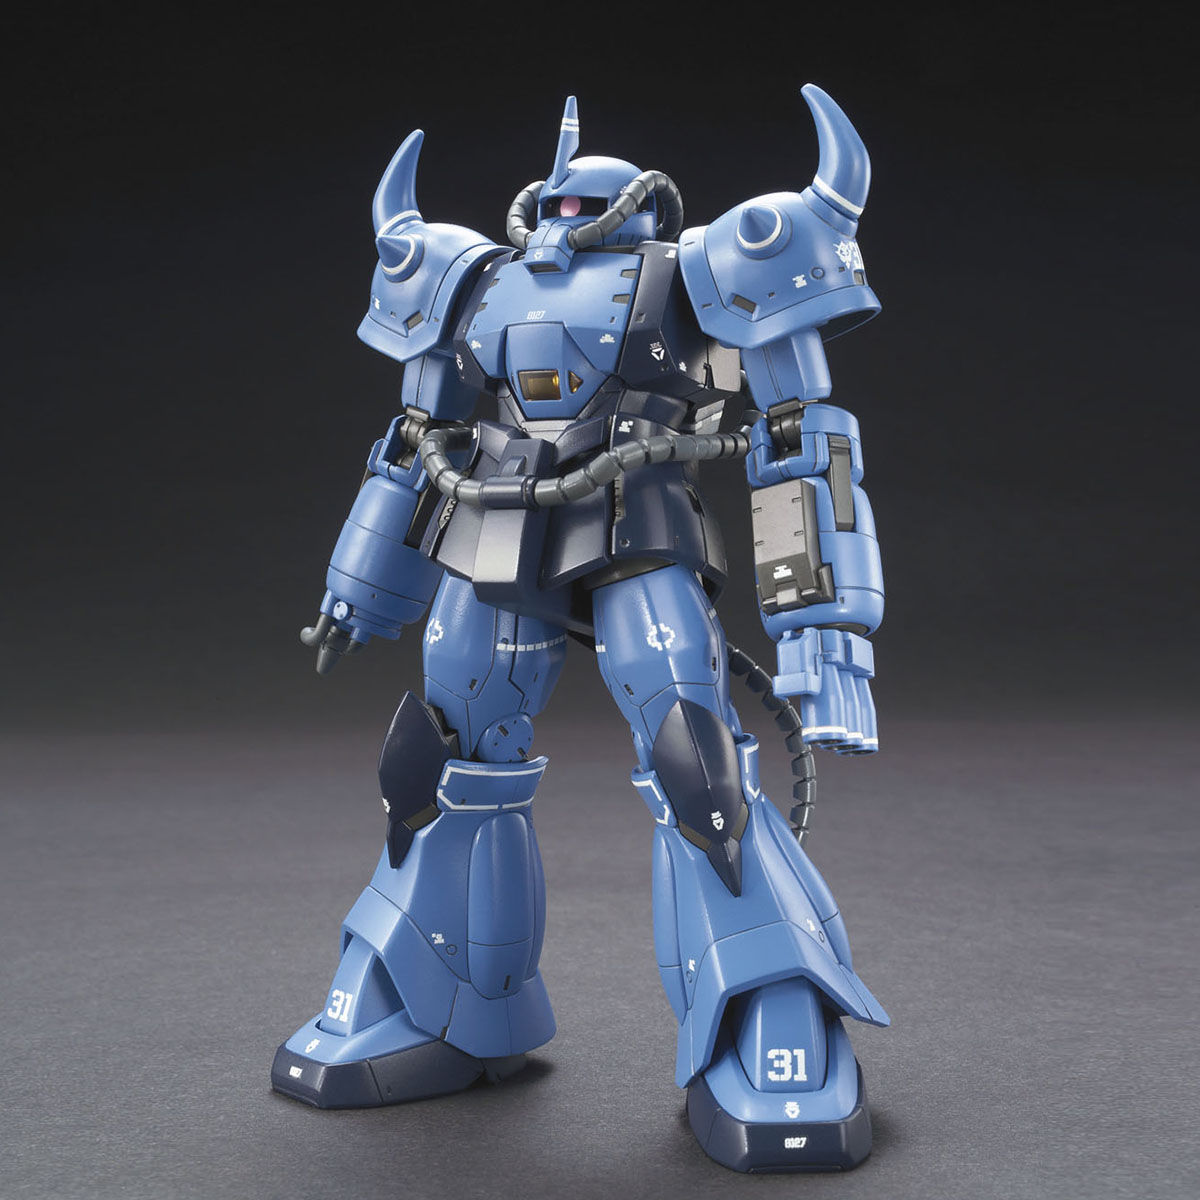 HG 1/144 YMS-07B-0 プロトタイプグフ(戦術実証機)[Prototype Gouf (Tactical Demonstrator)]  0200640 5057733 4573102577337